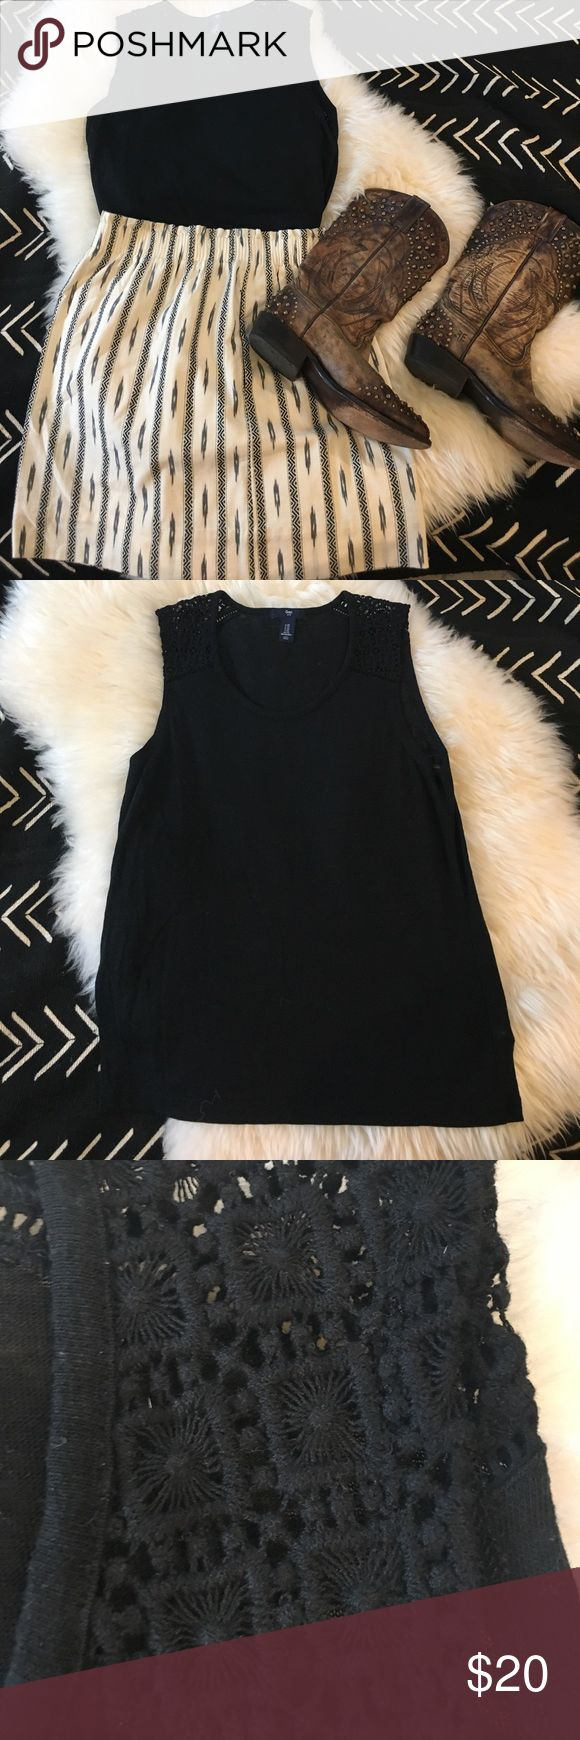 GAP linen blend top with crochet shoulder detail Cute black tank with crochet detail at shoulders. Pictured with J. Crew mini skirt and Frye cowboy boots also for sale in my closet. GAP Tops